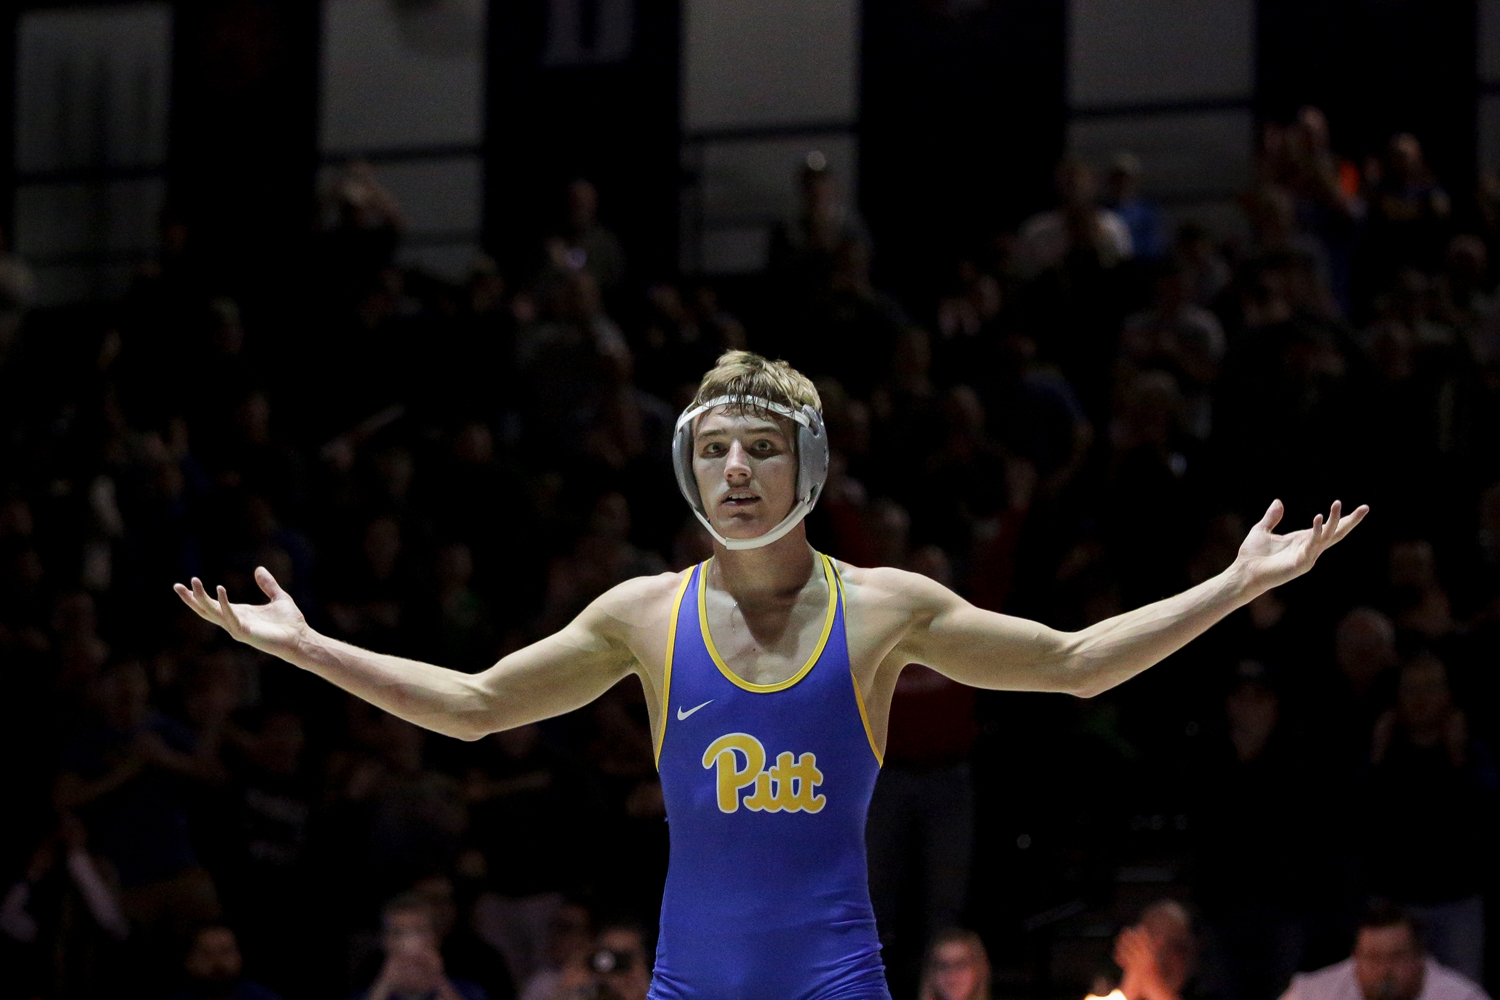 Redshirt sophomore Micky Phillippi improved to 8-0 on the year during Pitt's 29-6 victory over West Virginia.